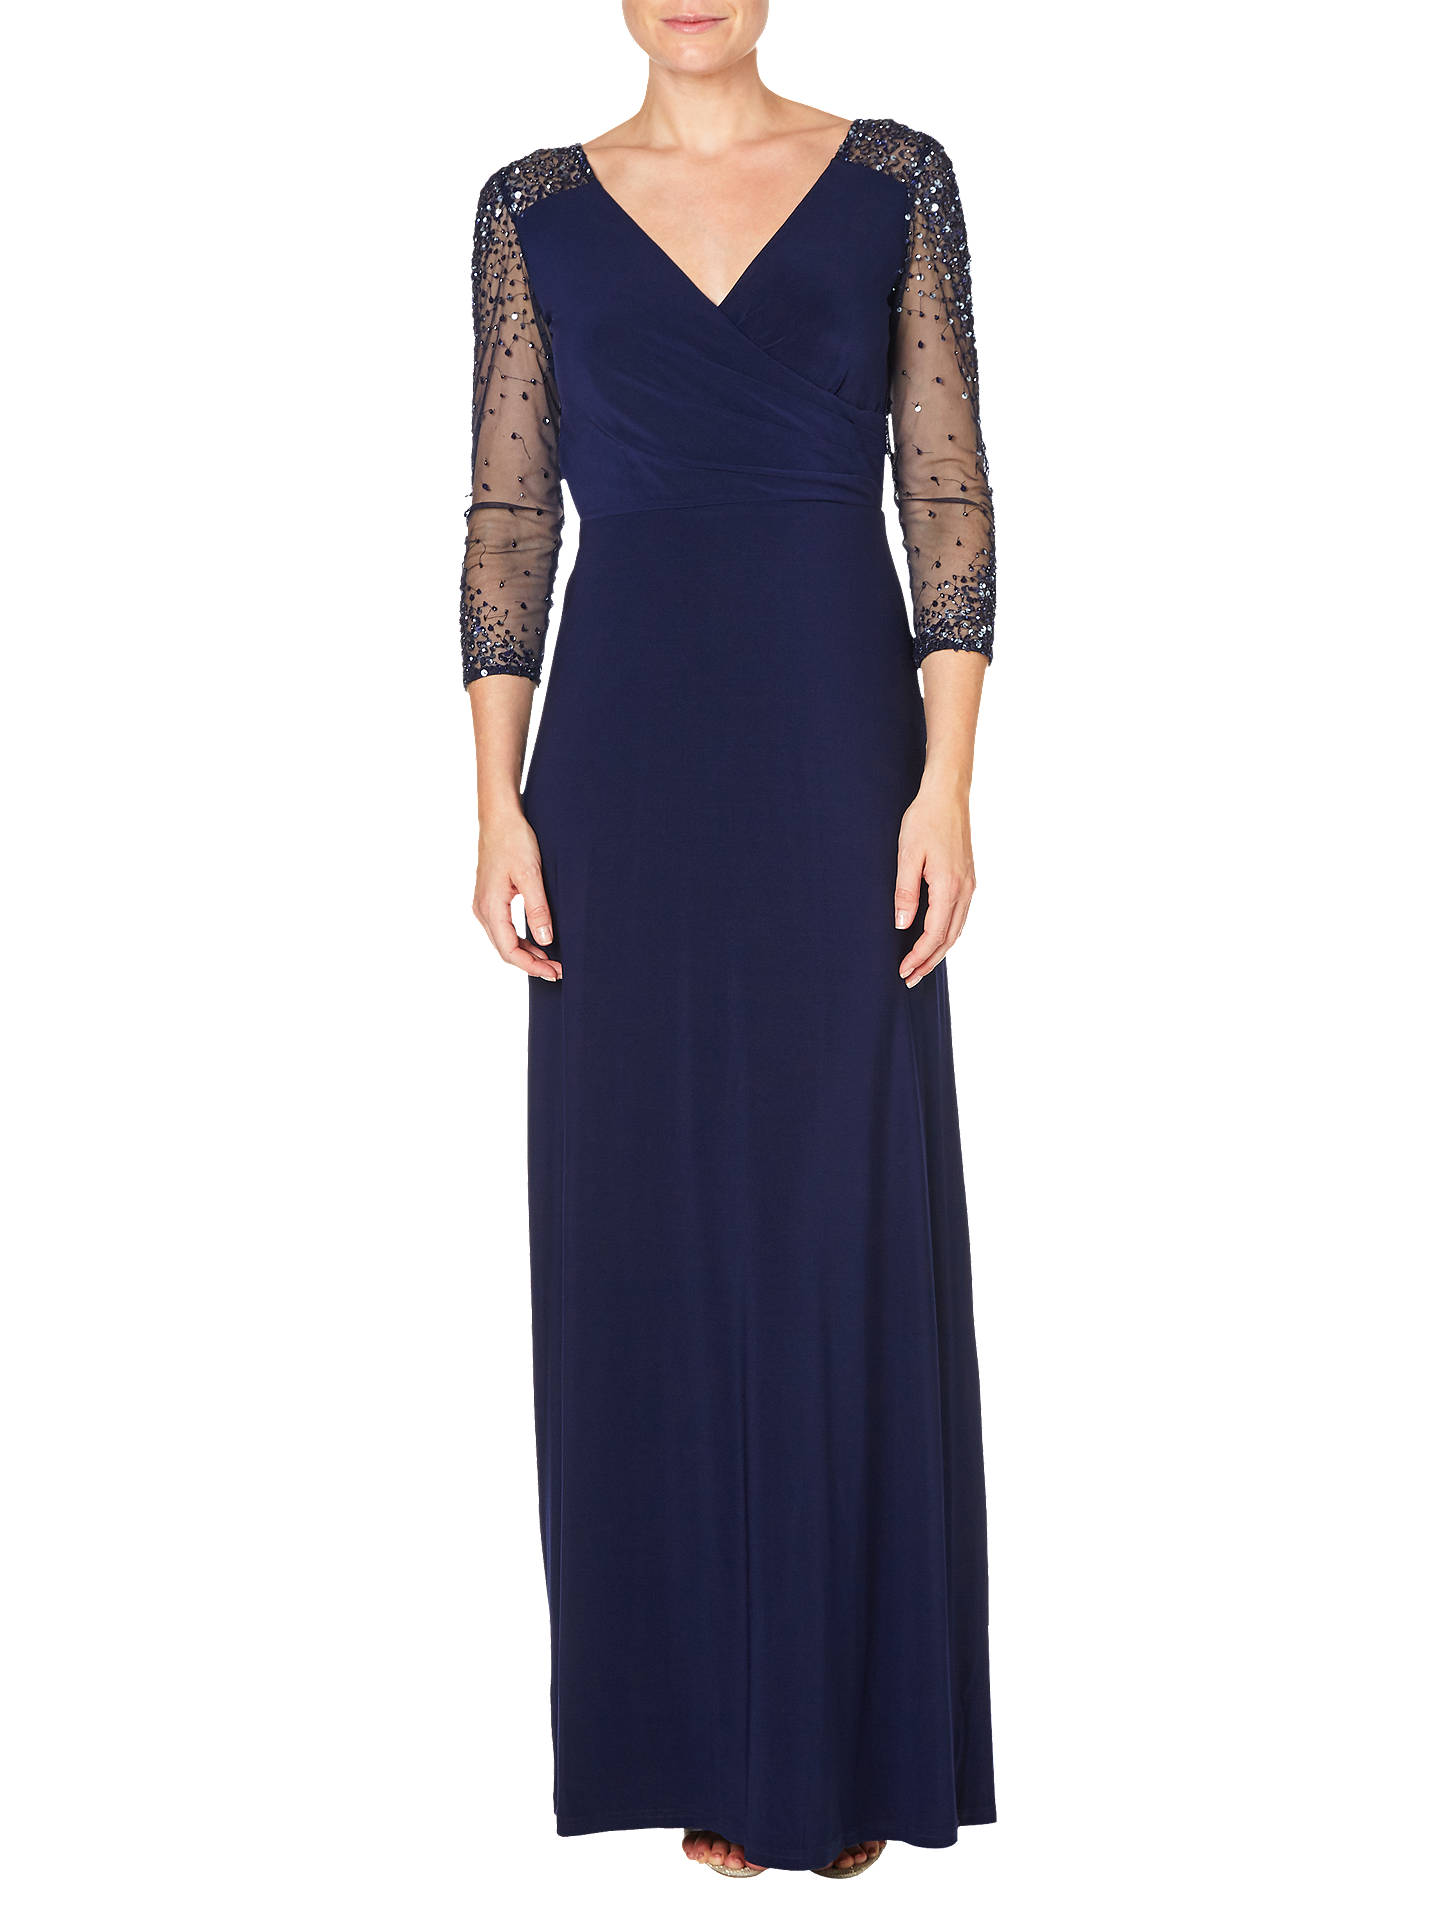 Adrianna Papell Jersey Beaded Gown, Midnight at John Lewis & Partners